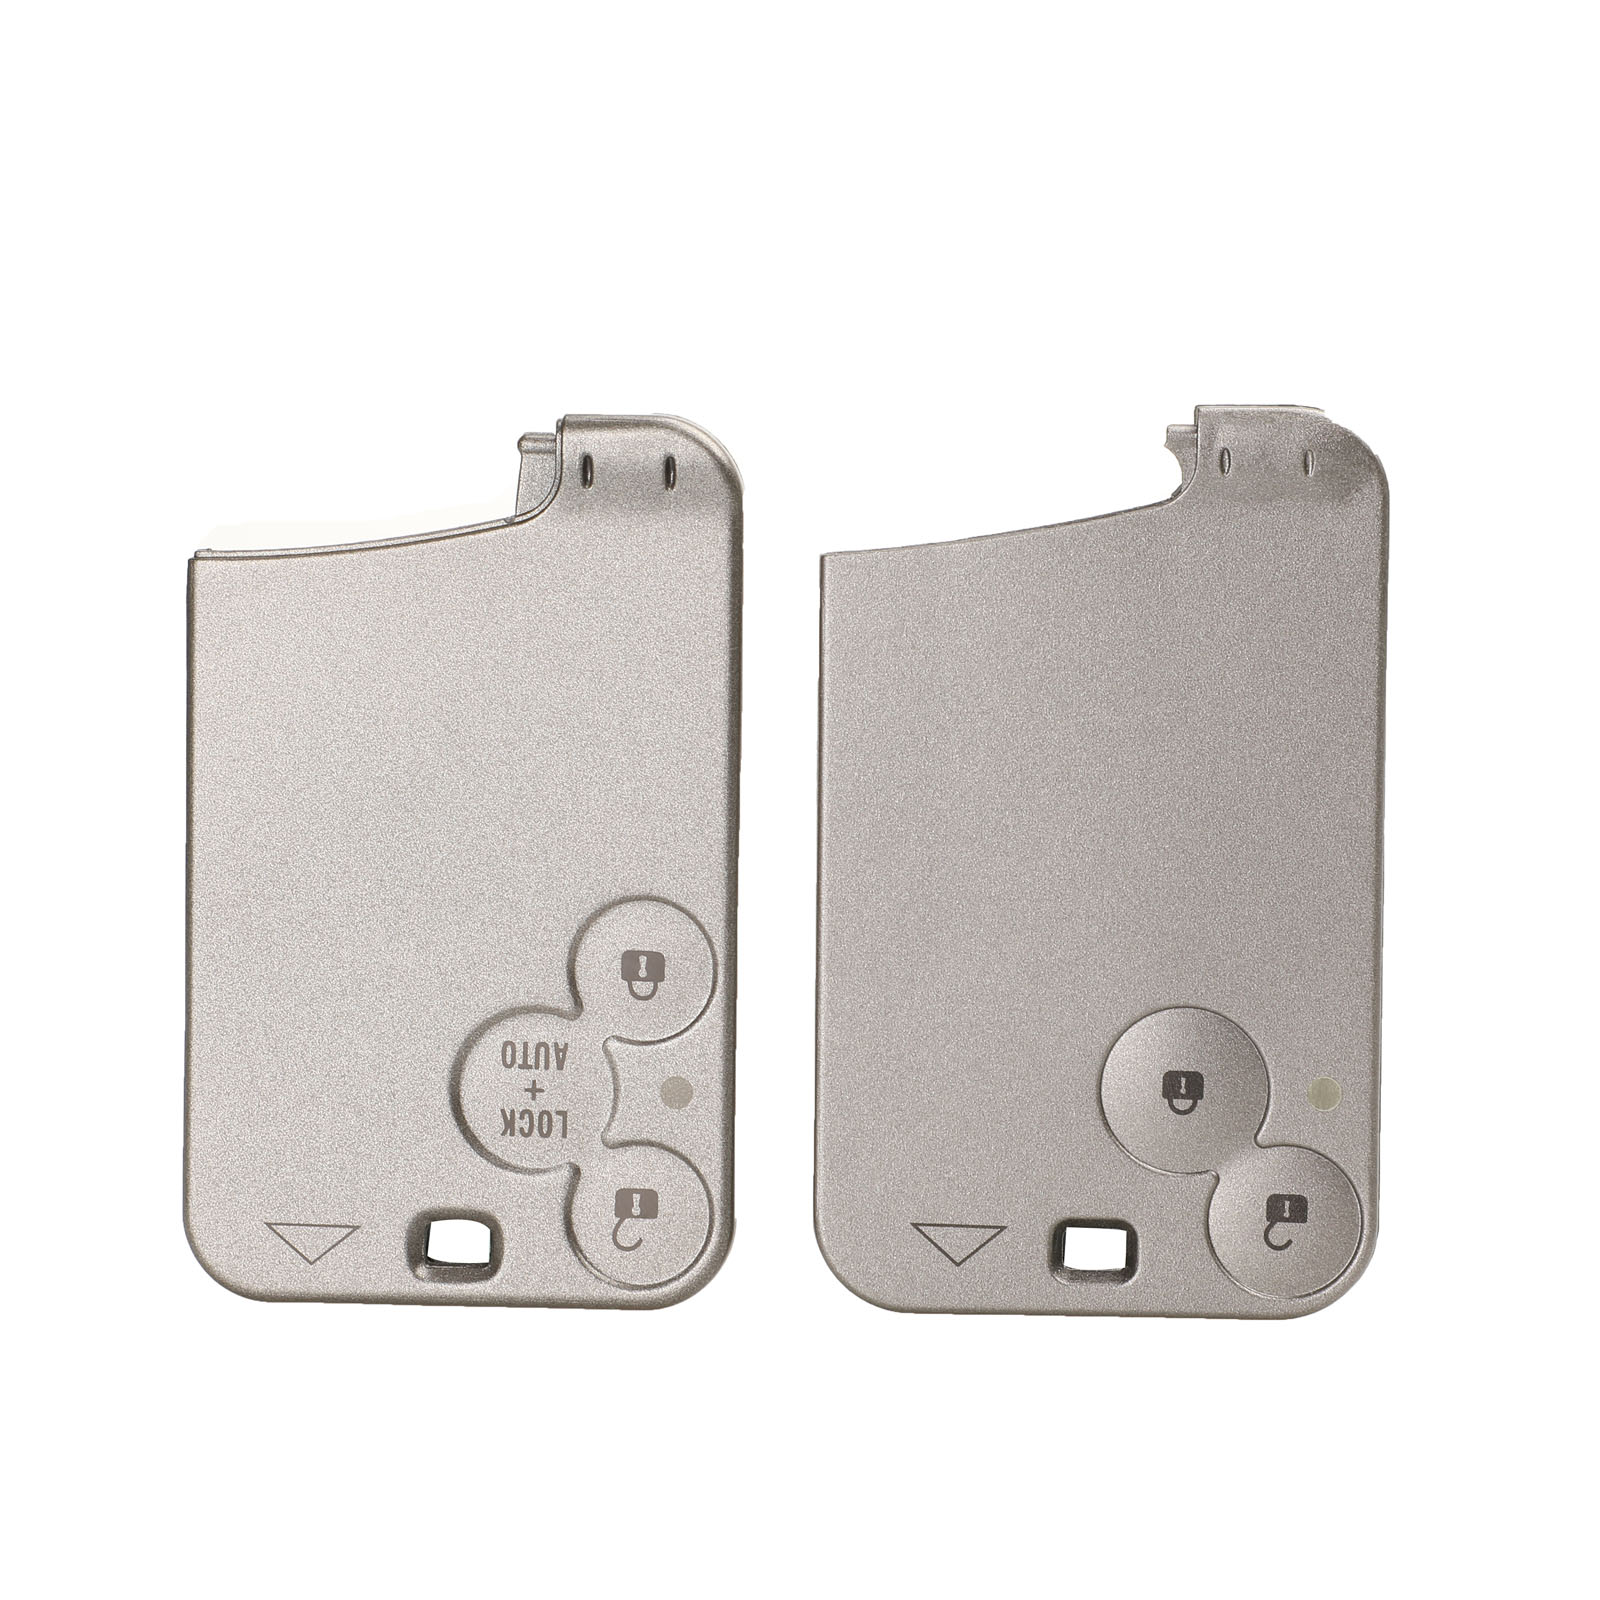 Jingyuqin Remote 2/3 Buttons Car Case Key Shell Cover For Renault Laguna Espace Smart Card Car Styling